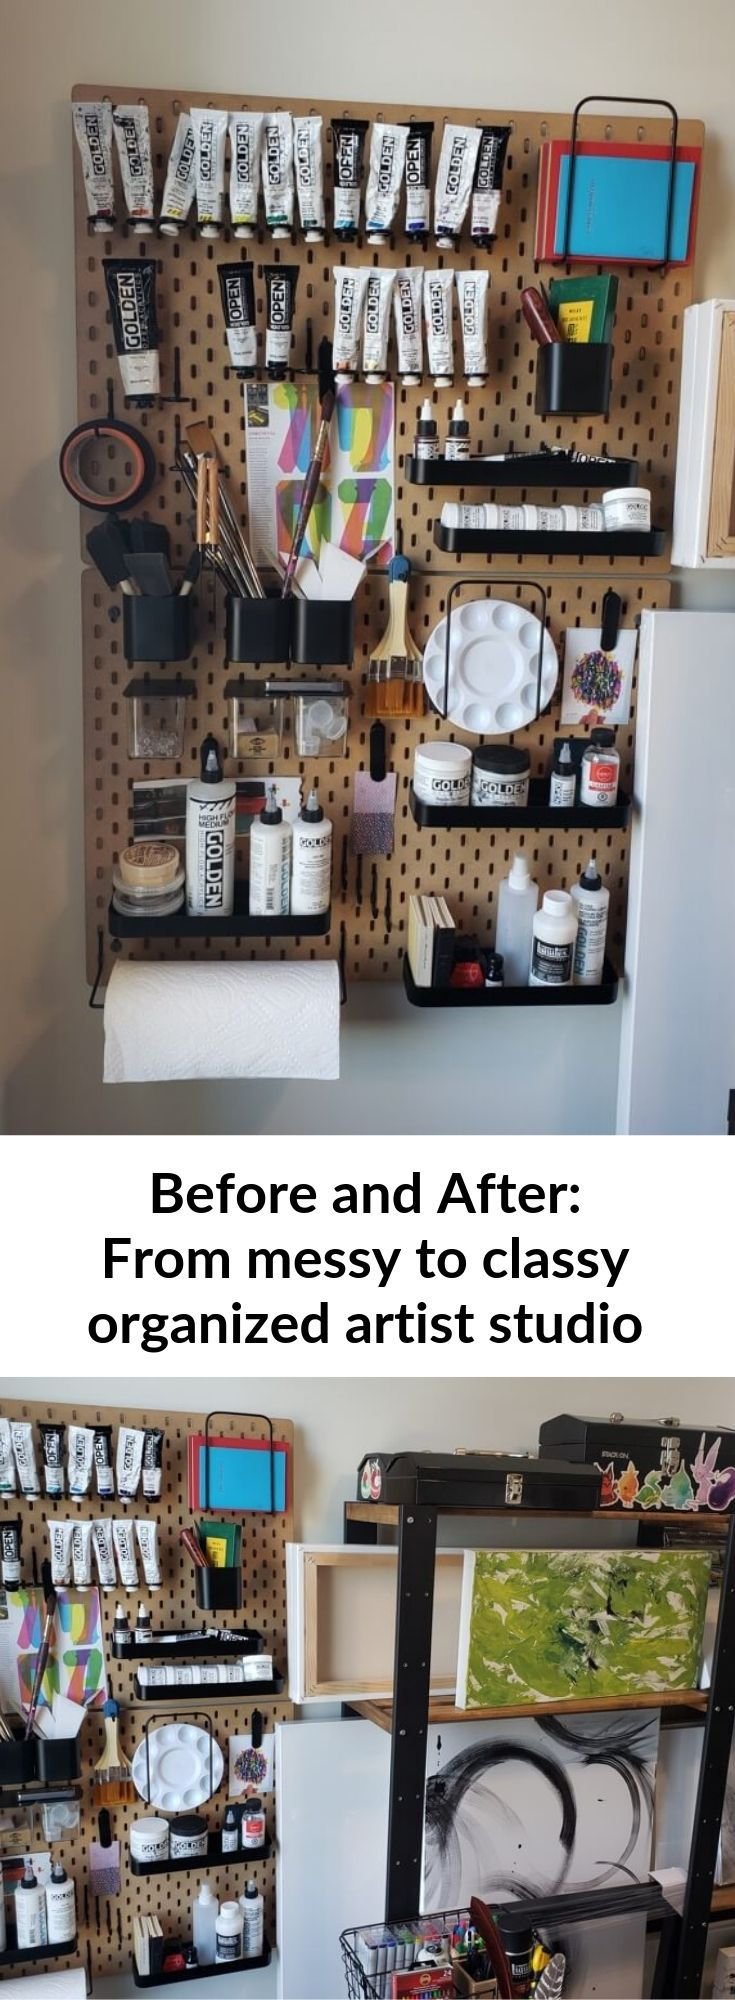 From cluttered to classy, organized art canvas storage - IKEA Hackers